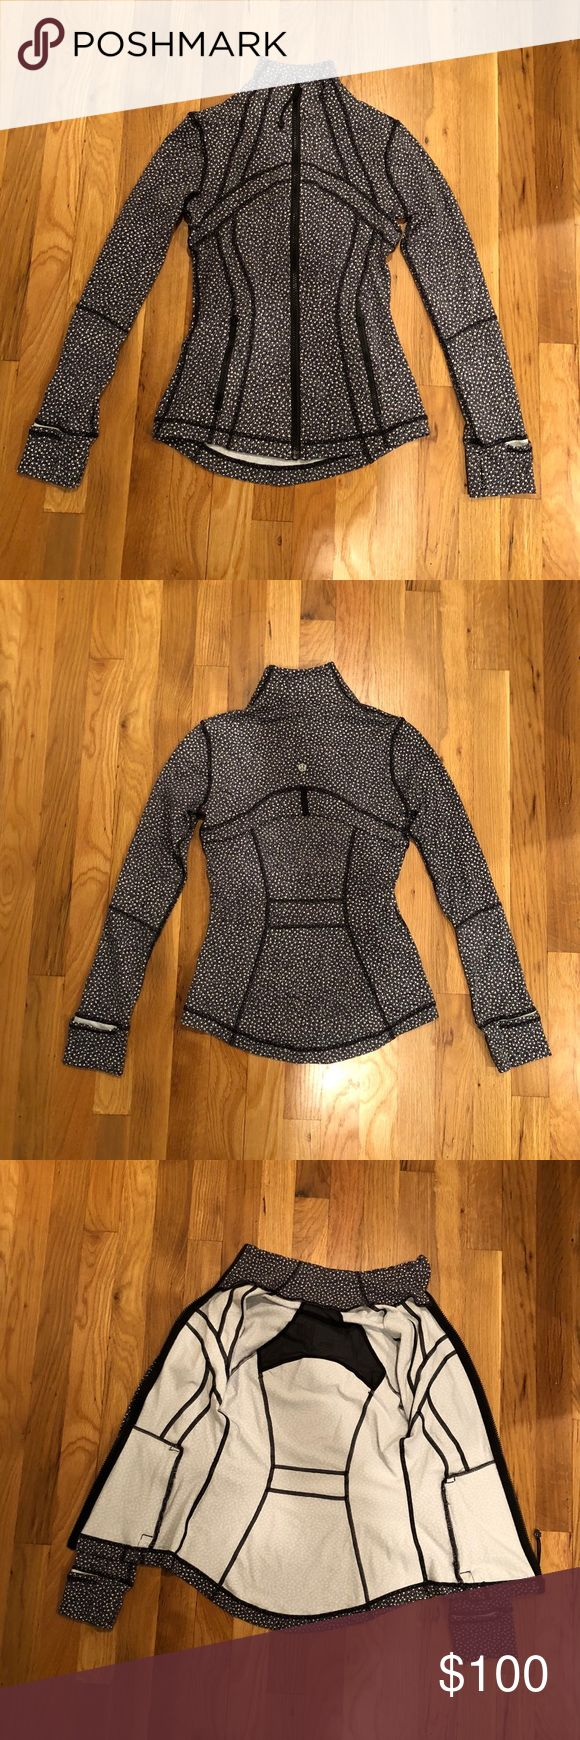 Lululemon Define Jacket Barely worn black speckled lululemon jacket. Perfect condition! I wore twice but it was a little too small for me. Made from athletic material and thumb holes.   Comes from a smoke-free home.  Open to offers! lululemon athletica Jackets & Coats